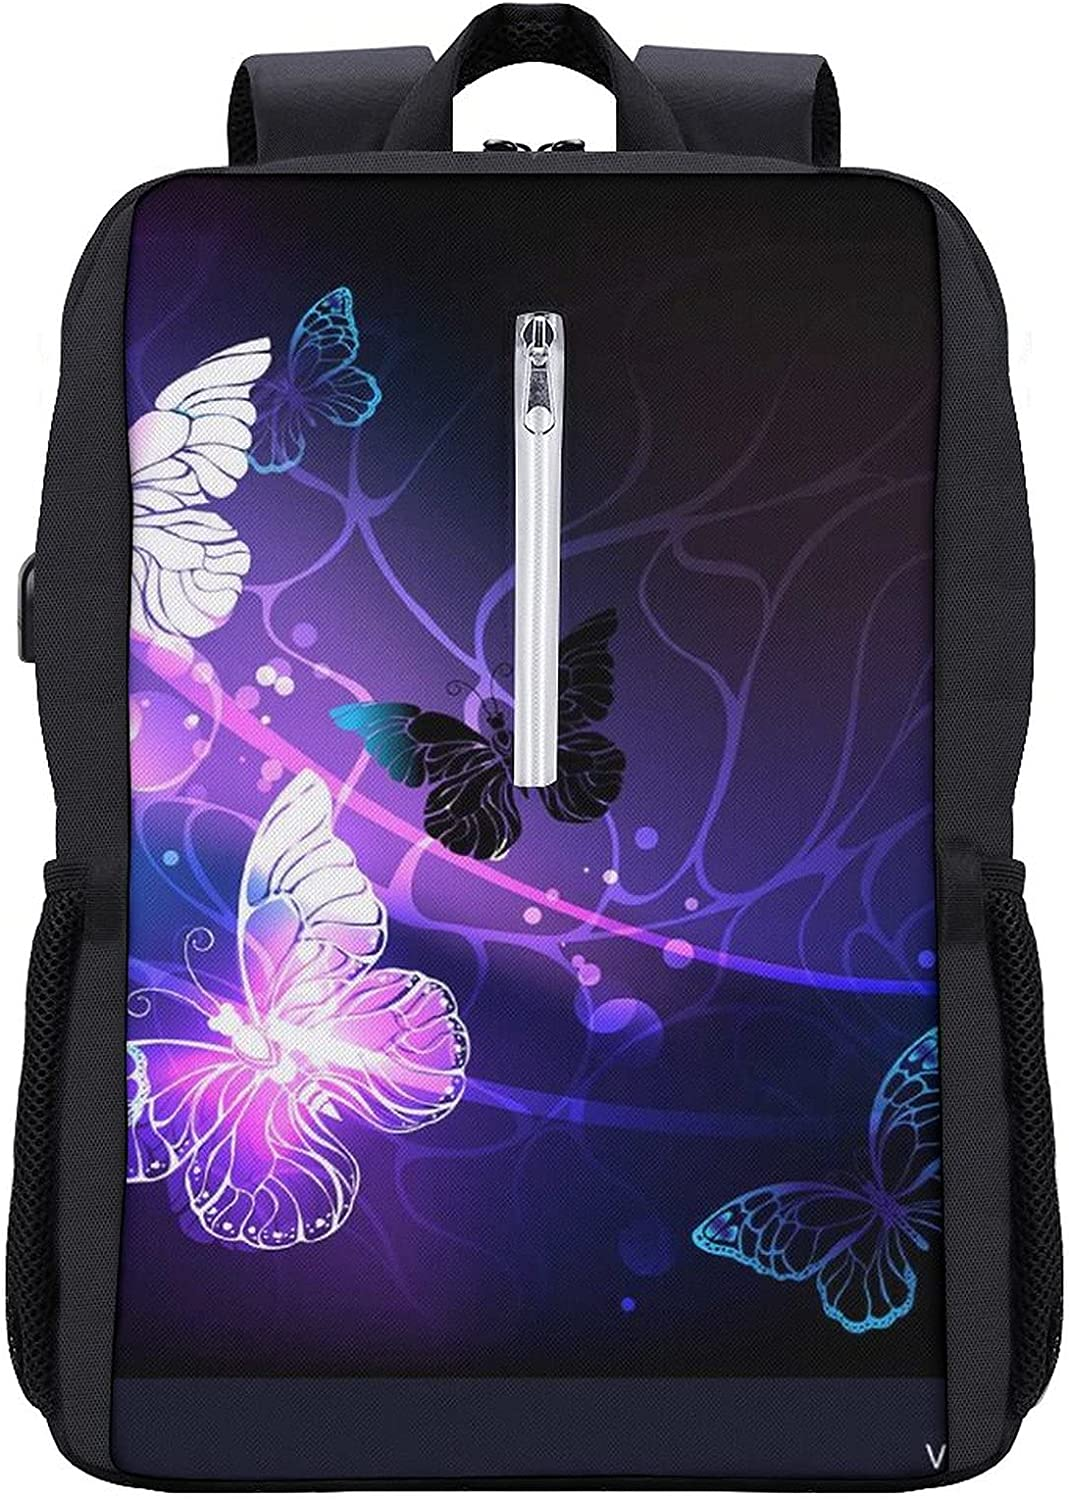 Night Butterflies Fort Worth Mall Backpack for Men Travel USB Award-winning store with Cha